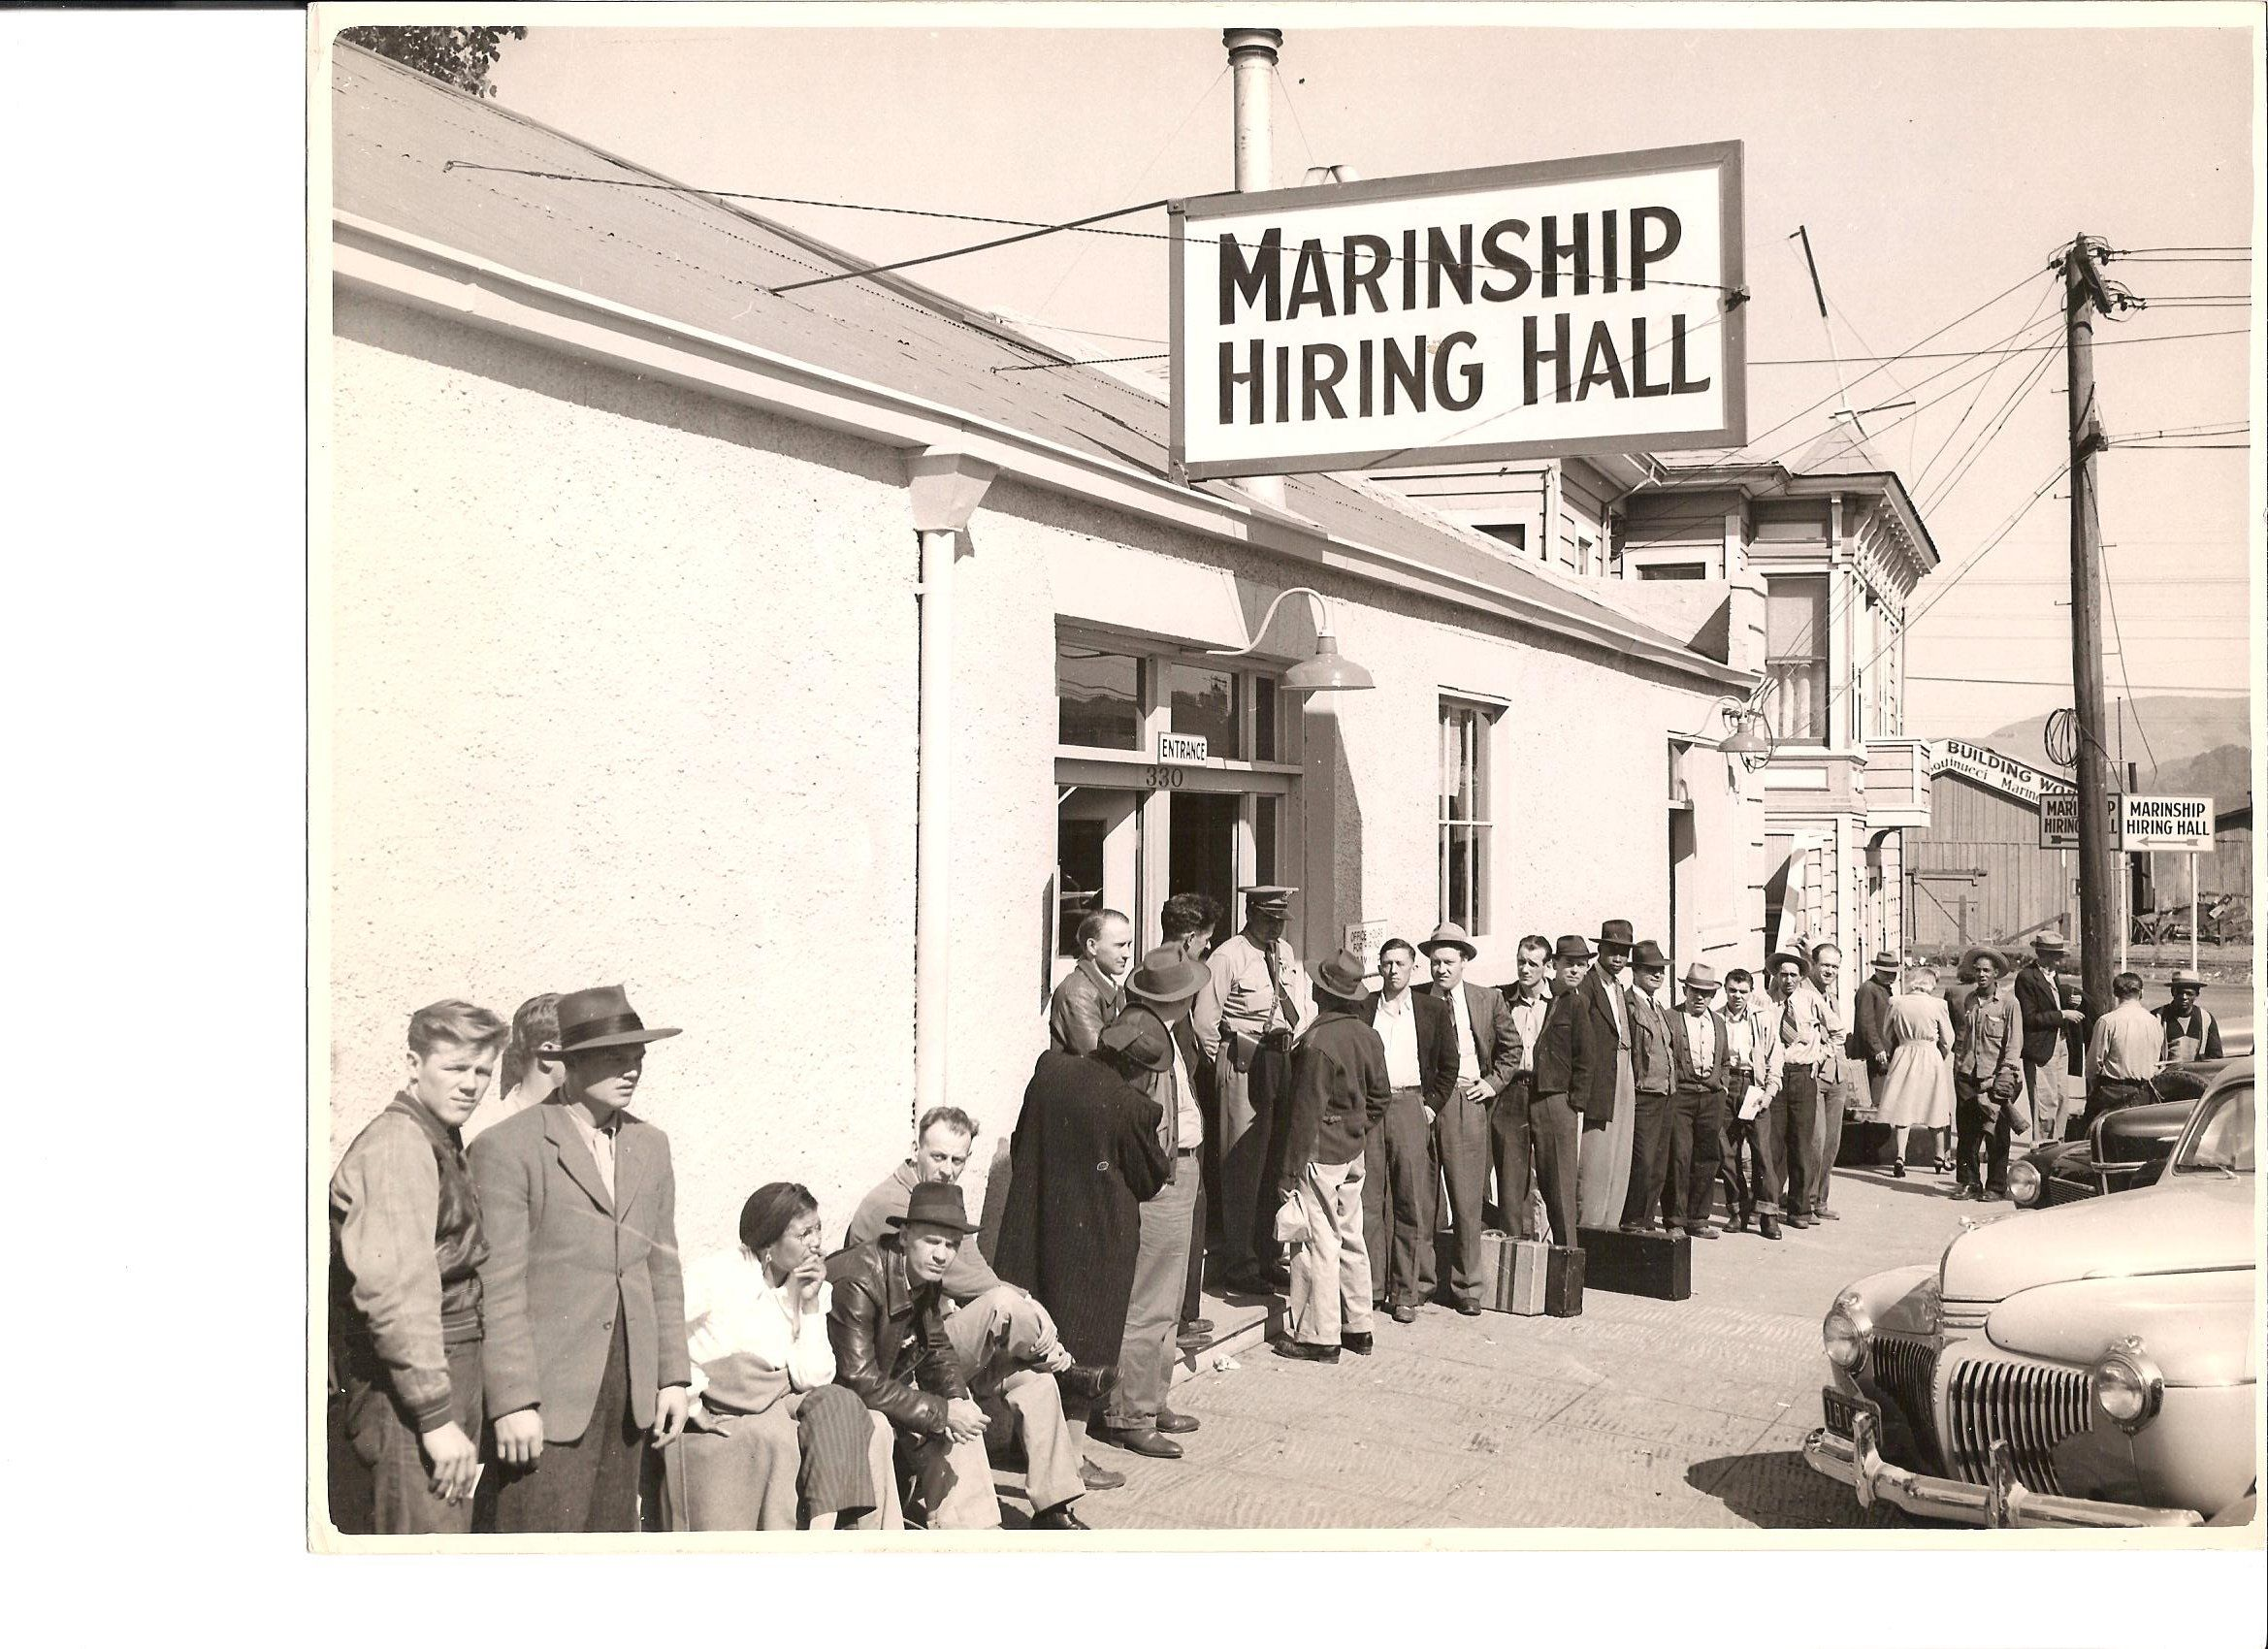 A diverse group of applicants lines up outside the Marinship Hiring Hall on Caledonia Street (now the site of Driver's Market). Photo courtesy of Sausalito Historical Society